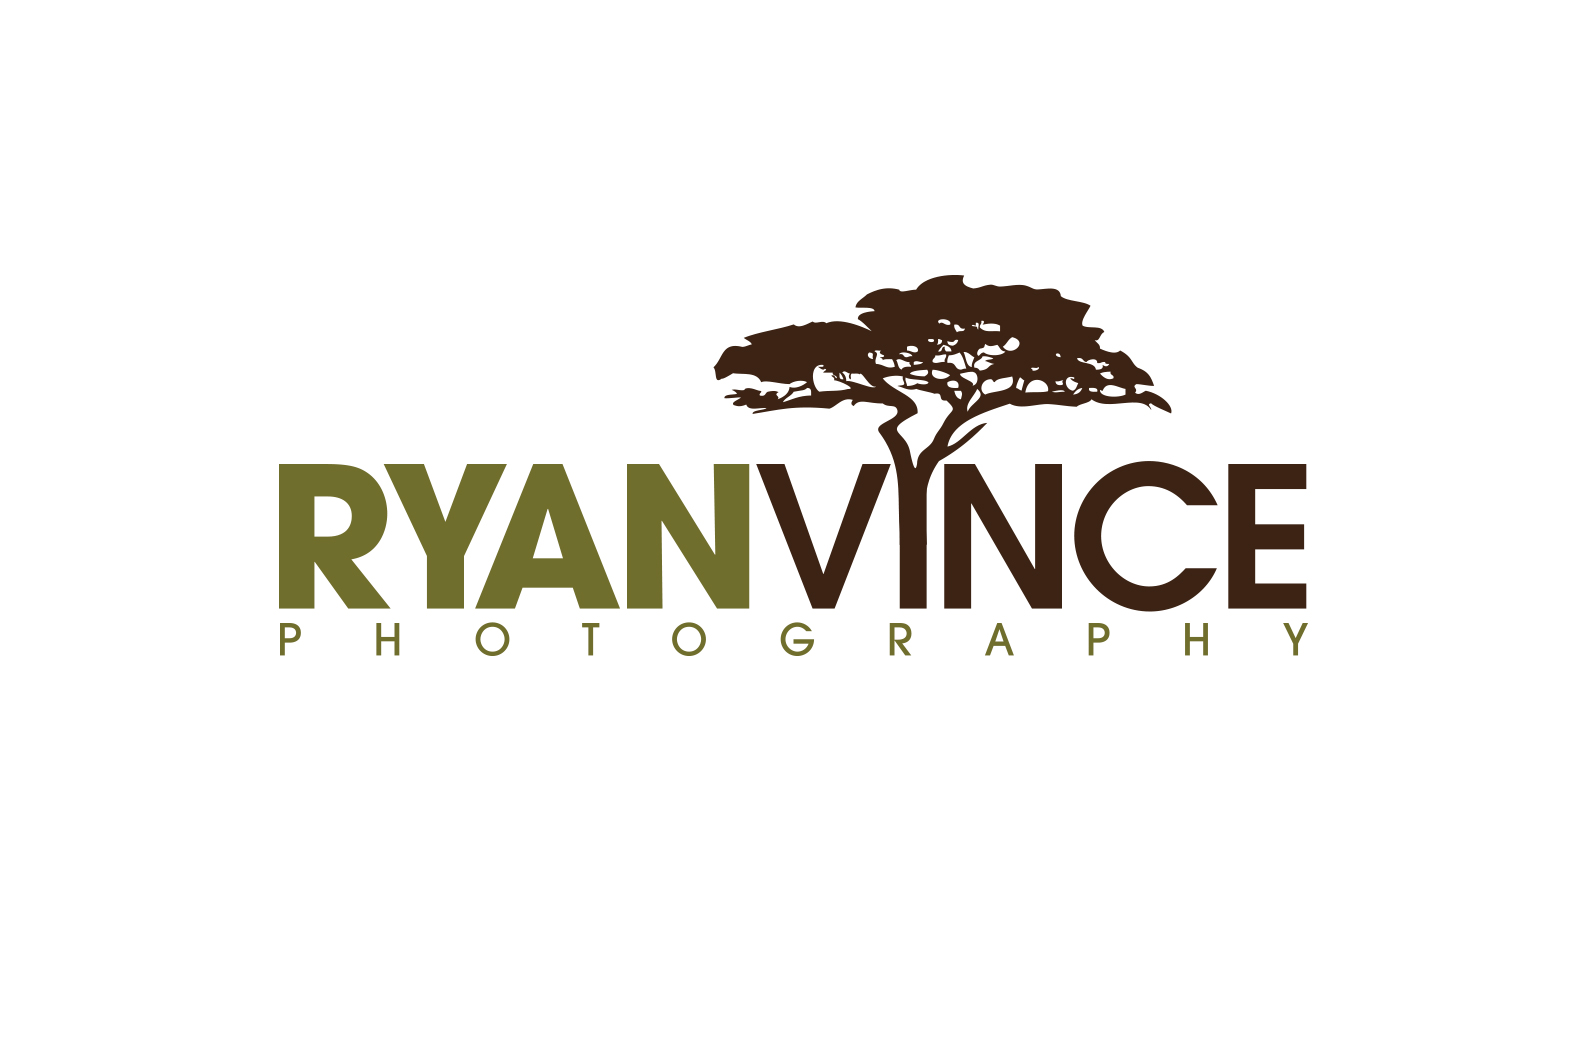 Ryan_Vince_Photography_Original.jpg